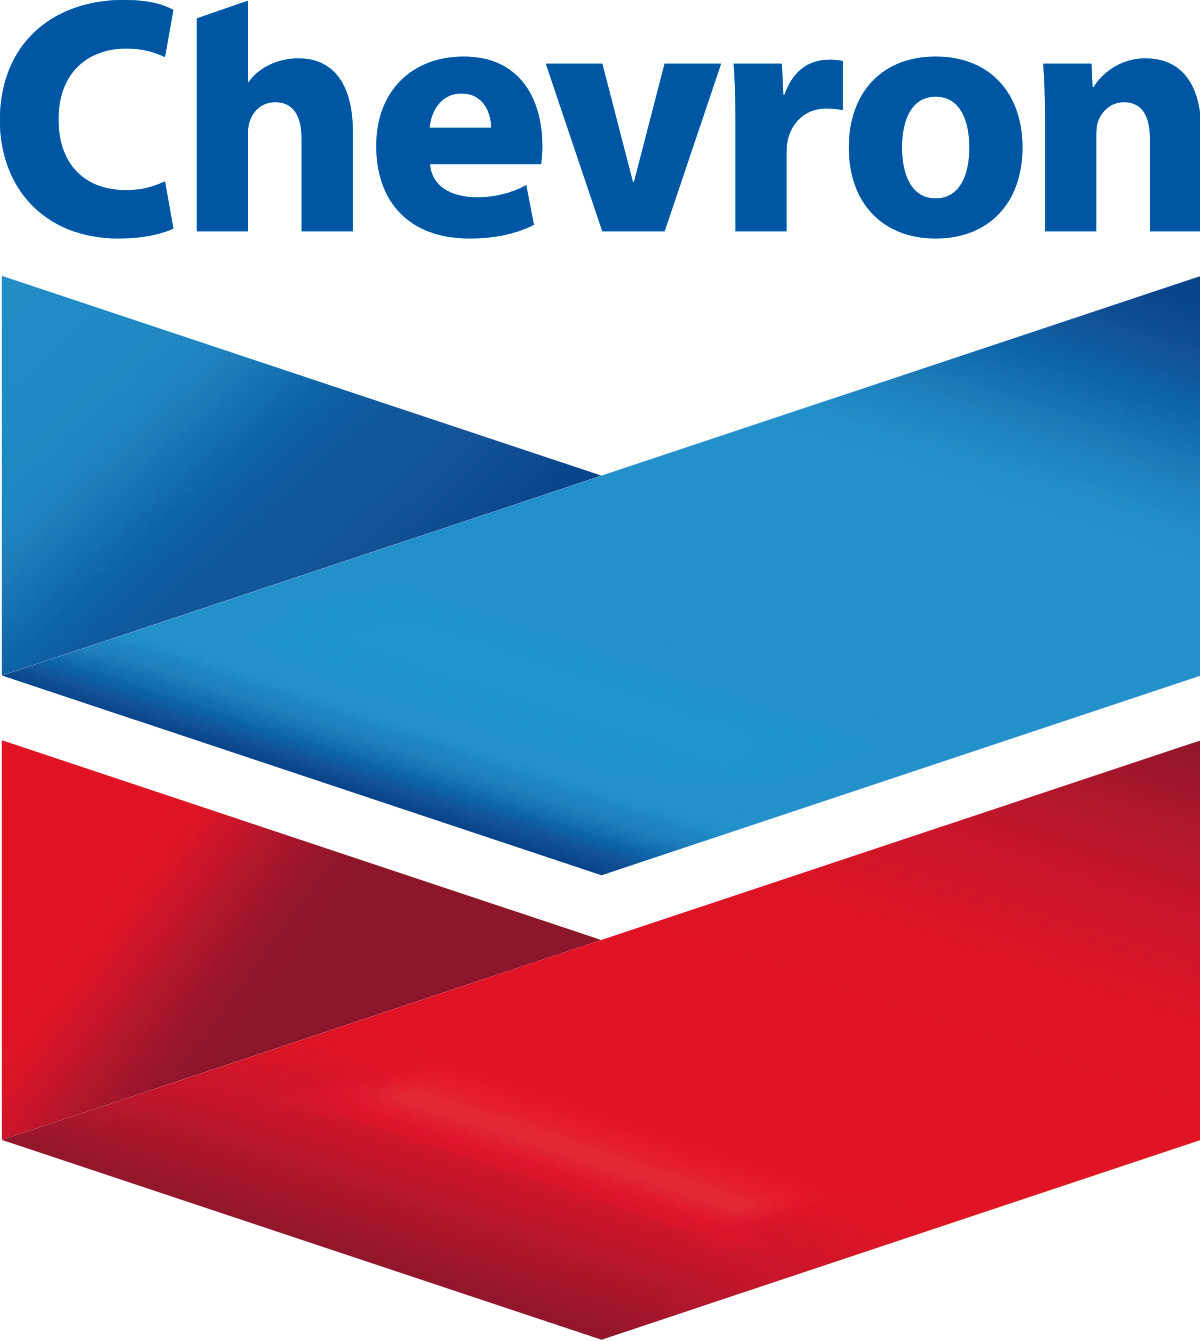 Thermal intervention oil drilling png. Chevron corporation wikipedia